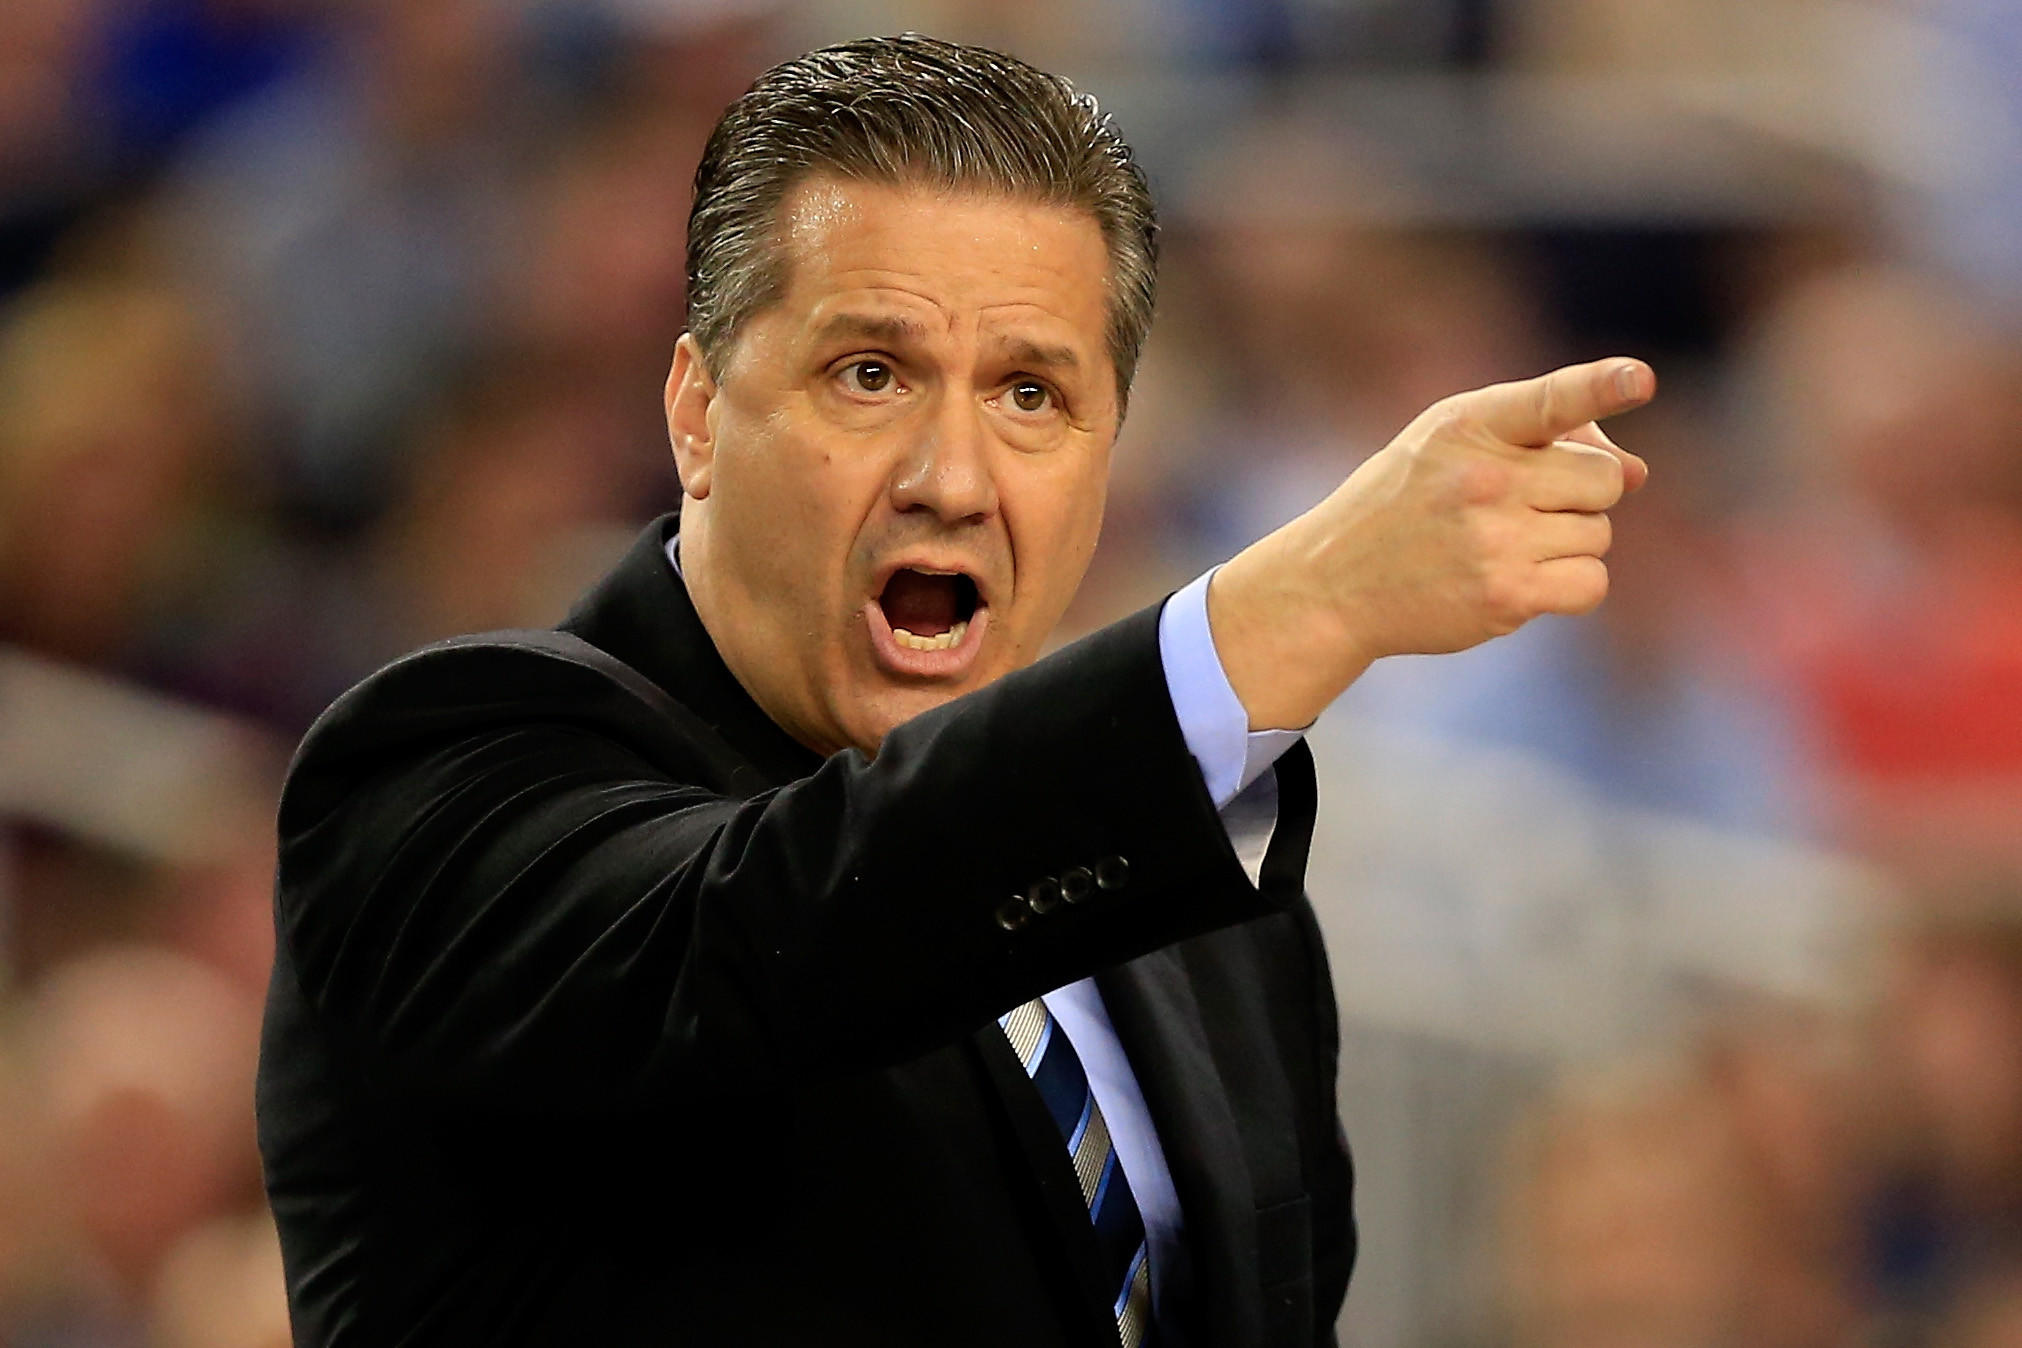 Kentucky head coach John Calipari motions to his players during the NCAA Final Four Championship against the Connecticut Huskies at AT&T Stadium on April 7, 2014.